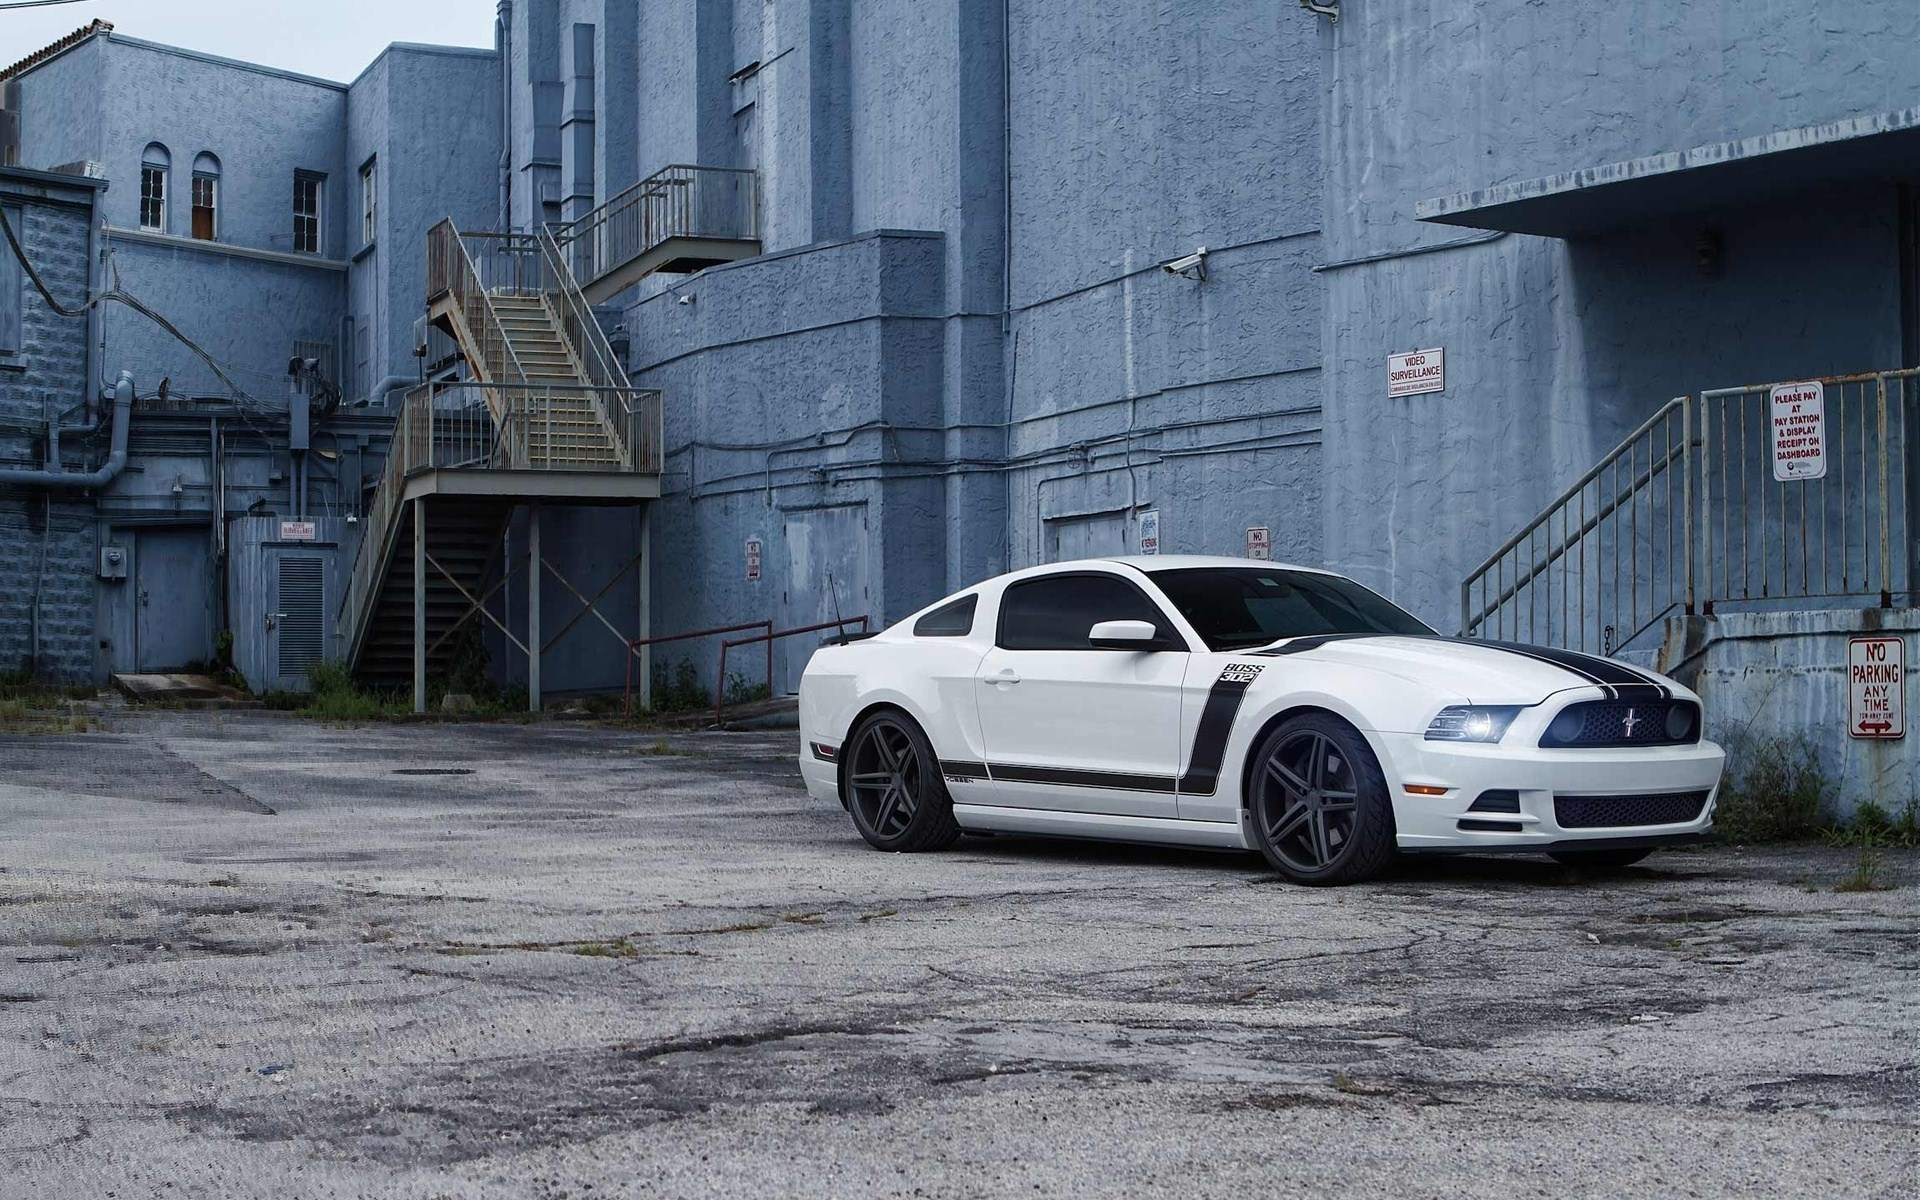 Ford Mustang Boss 302 Hd Wallpaper Background Image 1920x1200